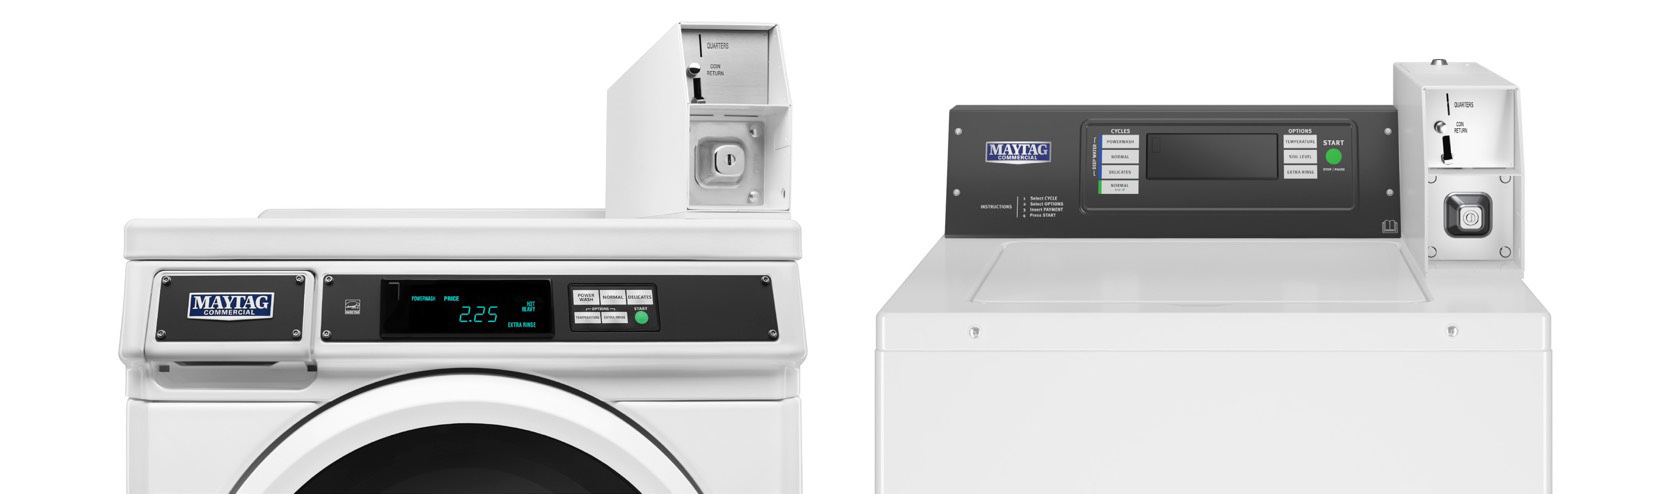 Maytag MHN33PD and MAT20PD